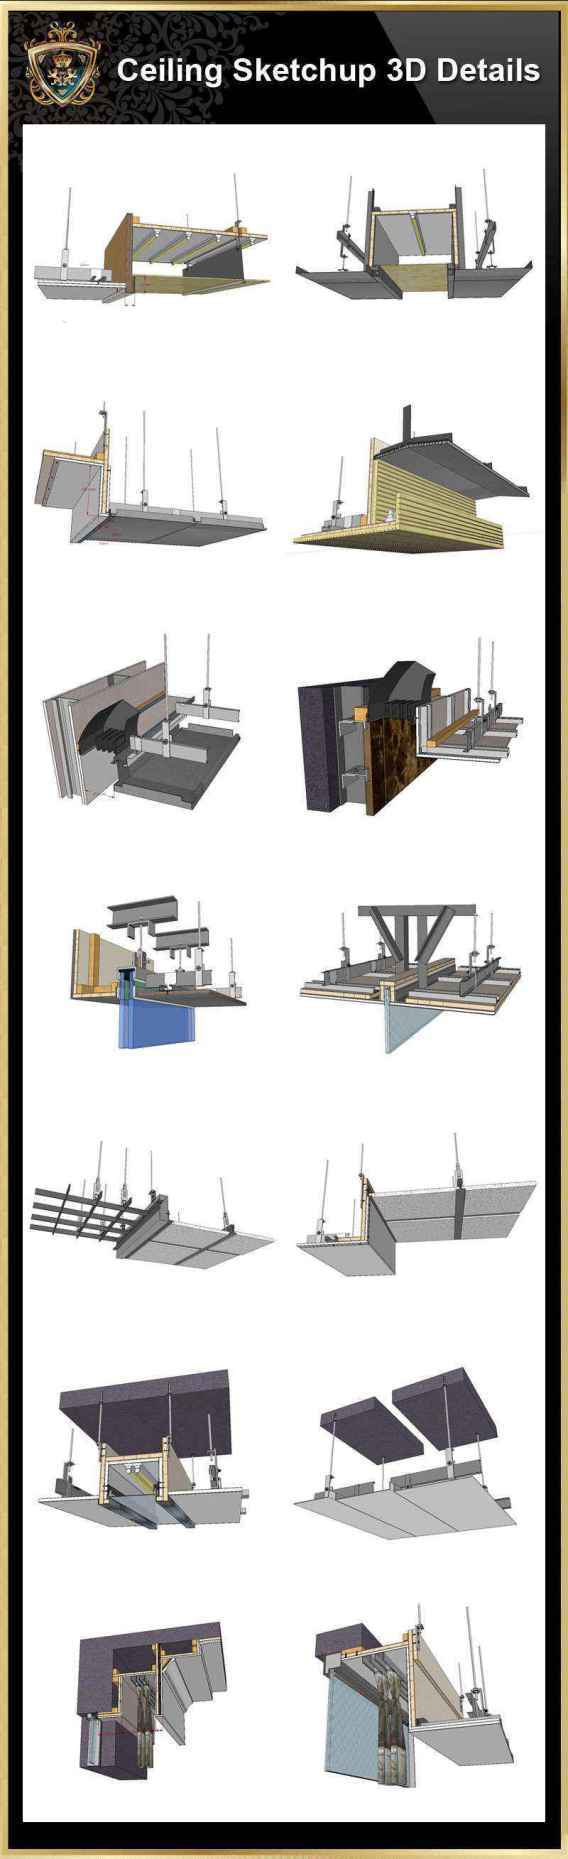 【Best 70 Types Ceiling Sketchup 3D Detail Models】 (★Recommanded★)(*.skp file format). This Sketchup 3D CAD models collection can be used in your 3D design drawings(Sketchup,Autocad,3D max,Revit). Download Best 70 Types Ceiling Sketchup 3D Detail Models(*.skp file format). This Sketchup 3D models collection can be used in your 3D design software(Sketchup,Autocad,3D max,Revit).Downloading 3D Sketchup Models to fuel your creative pursuits. Include the followings sketchup 3D Models: Sketchup Ceiling Details-01-light steel frame ceiling - hard cover ceiling.skp Sketchup Ceiling Details-01-plasterboard ceiling .skp Sketchup Ceiling Details-02-plasterboard ceiling - gold and silver foil ceiling .skp Sketchup Ceiling Details-02-plasterboard ceiling - sewed ceiling.skp Sketchup Ceiling Details-03-plasterboard ceiling - Malay paint, diatom mud.skp Sketchup Ceiling Details-03-plasterboard ceiling-mirror ceiling.skp Sketchup Ceiling Details-04-stainless steel ceiling.skp Sketchup Ceiling Details-04-wood veneer ceiling.skp Sketchup Ceiling Details-05-mineral wool board ceiling-1.skp Sketchup Ceiling Details-05-mineral wool board ceiling-2.skp Sketchup Ceiling Details-06-calcium silicate board ceiling.skp Sketchup Ceiling Details-06-mineral wool board ceiling.skp Sketchup Ceiling Details-07-air conditioning duct.skp Sketchup Ceiling Details-07-glass ceiling.skp Sketchup Ceiling Details-08-air conditioning duct.skp Sketchup Ceiling Details-08-glass partition.skp Sketchup Ceiling Details-09-plasterboard ceiling ceiling connect with stone 2.skp Sketchup Ceiling Details-09-plasterboard ceiling connect with stone 1.skp Sketchup Ceiling Details-10-plasterboard ceiling ceiling connect with glass.skp Sketchup Ceiling Details-10-smoke blocking wall.skp Sketchup Ceiling Details-11-plasterboard ceiling is connected to aluminum plate 1.skp Sketchup Ceiling Details-11-plasterboard ceiling is connected to aluminum plate 2.skp Sketchup Ceiling Details-12-plasterboard ceiling is connected to the metal plate.skp Sketchup Ceiling Details-12-plasterboard ceiling is connected with stone.skp Sketchup Ceiling Details-13-plasterboard ceiling is connected to stainless steel (1).skp Sketchup Ceiling Details-13-plasterboard ceiling is connected to stainless steel (2).skp Sketchup Ceiling Details-14-plasterboard ceiling is connected to glass.skp Sketchup Ceiling Details-14-plasterboard ceiling is connected to the mirror.skp Sketchup Ceiling Details-15-plasterboard ceiling is connected to the tuyere 1.skp Sketchup Ceiling Details-15-plasterboard ceiling is connected to the tuyere 2.skp Sketchup Ceiling Details-16-plasterboard ceiling is connected to GRC.skp Sketchup Ceiling Details-16-plasterboard ceiling is connected to the grid.skp Sketchup Ceiling Details-17-plasterboard ceiling is connected to wood veneer 1.skp Sketchup Ceiling Details-17-plasterboard ceiling is connected to wood veneer 2.skp Sketchup Ceiling Details-18-plasterboard ceiling is connected to the transparent film.skp Sketchup Ceiling Details-18-plasterboard ceiling is connected to wood veneer 3.skp Sketchup Ceiling Details-19-plasterboard ceiling is connected to the mirror .skp Sketchup Ceiling Details-19-plasterboard ceiling is connected with marble .skp Sketchup Ceiling Details-20 stone is connected with plasterboard.skp Sketchup Ceiling Details-20 transparent marble is connected with gypsum board.skp Sketchup Ceiling Details-21 aluminum grille is connected to wood veneer.skp Sketchup Ceiling Details-21 aluminum grille is connected with gypsum board.skp Sketchup Ceiling Details-22 aluminum gusset plate is connected with gypsum board.skp Sketchup Ceiling Details-22 aluminum gusset plate is connected with soft film .skp Sketchup Ceiling Details-23 light transmissive plate is connected with gypsum board.skp Sketchup Ceiling Details-23 light-transmitting plate is connected with aluminum plate.skp Sketchup Ceiling Details-24 aluminum gusset plate is connected with gypsum board.skp Sketchup Ceiling Details-24 aluminum plate is connected with sound absorbing panel.skp Sketchup Ceiling Details-25 tuyere is connected to the metal plate.skp Sketchup Ceiling Details-25 tuyere is connected with gypsum board.skp Sketchup Ceiling Details-26 glass partition is connected to aluminum plate.skp Sketchup Ceiling Details-26 glass partition is connected with gypsum board .skp Sketchup Ceiling Details-27 mineral wool board is connected with aluminum grille .skp Sketchup Ceiling Details-27 mineral wool board is connected with gypsum board .skp Sketchup Ceiling Details-28 soft film is connected with gypsum board .skp Sketchup Ceiling Details-28 top aluminum plate expansion joint practice .skp Sketchup Ceiling Details-29 plasterboard facing blockboard base layer .skp Sketchup Ceiling Details-29 plasterboard facing blockboard base layer.skp Sketchup Ceiling Details-30 curtain box and glass curtain wall closing node .skp Sketchup Ceiling Details-30 curtain box and glass curtain wall closing node.skp Sketchup Ceiling Details-31 curtain box and aluminum buckle board closing node .skp Sketchup Ceiling Details-31 curtain box and aluminum buckle board closing node.skp Sketchup Ceiling Details-32 hidden lamp with curtain box node .skp Sketchup Ceiling Details-32 hidden lamp with curtain box node.skp Sketchup Ceiling Details-33 finished aluminum edge inspection port reinforcement node details .skp Sketchup Ceiling Details-33 white soft film is connected with wood veneer .skp Sketchup Ceiling Details-34 plasterboard is connected to the steel cylinder .skp Sketchup Ceiling Details-34 wood veneer is connected with steel cylinder .skp Sketchup Ceiling Details-35 wood veneer is connected to the tea mirror .skp Sketchup Ceiling Details-35 wood veneer is connected with the tea mirror .skp